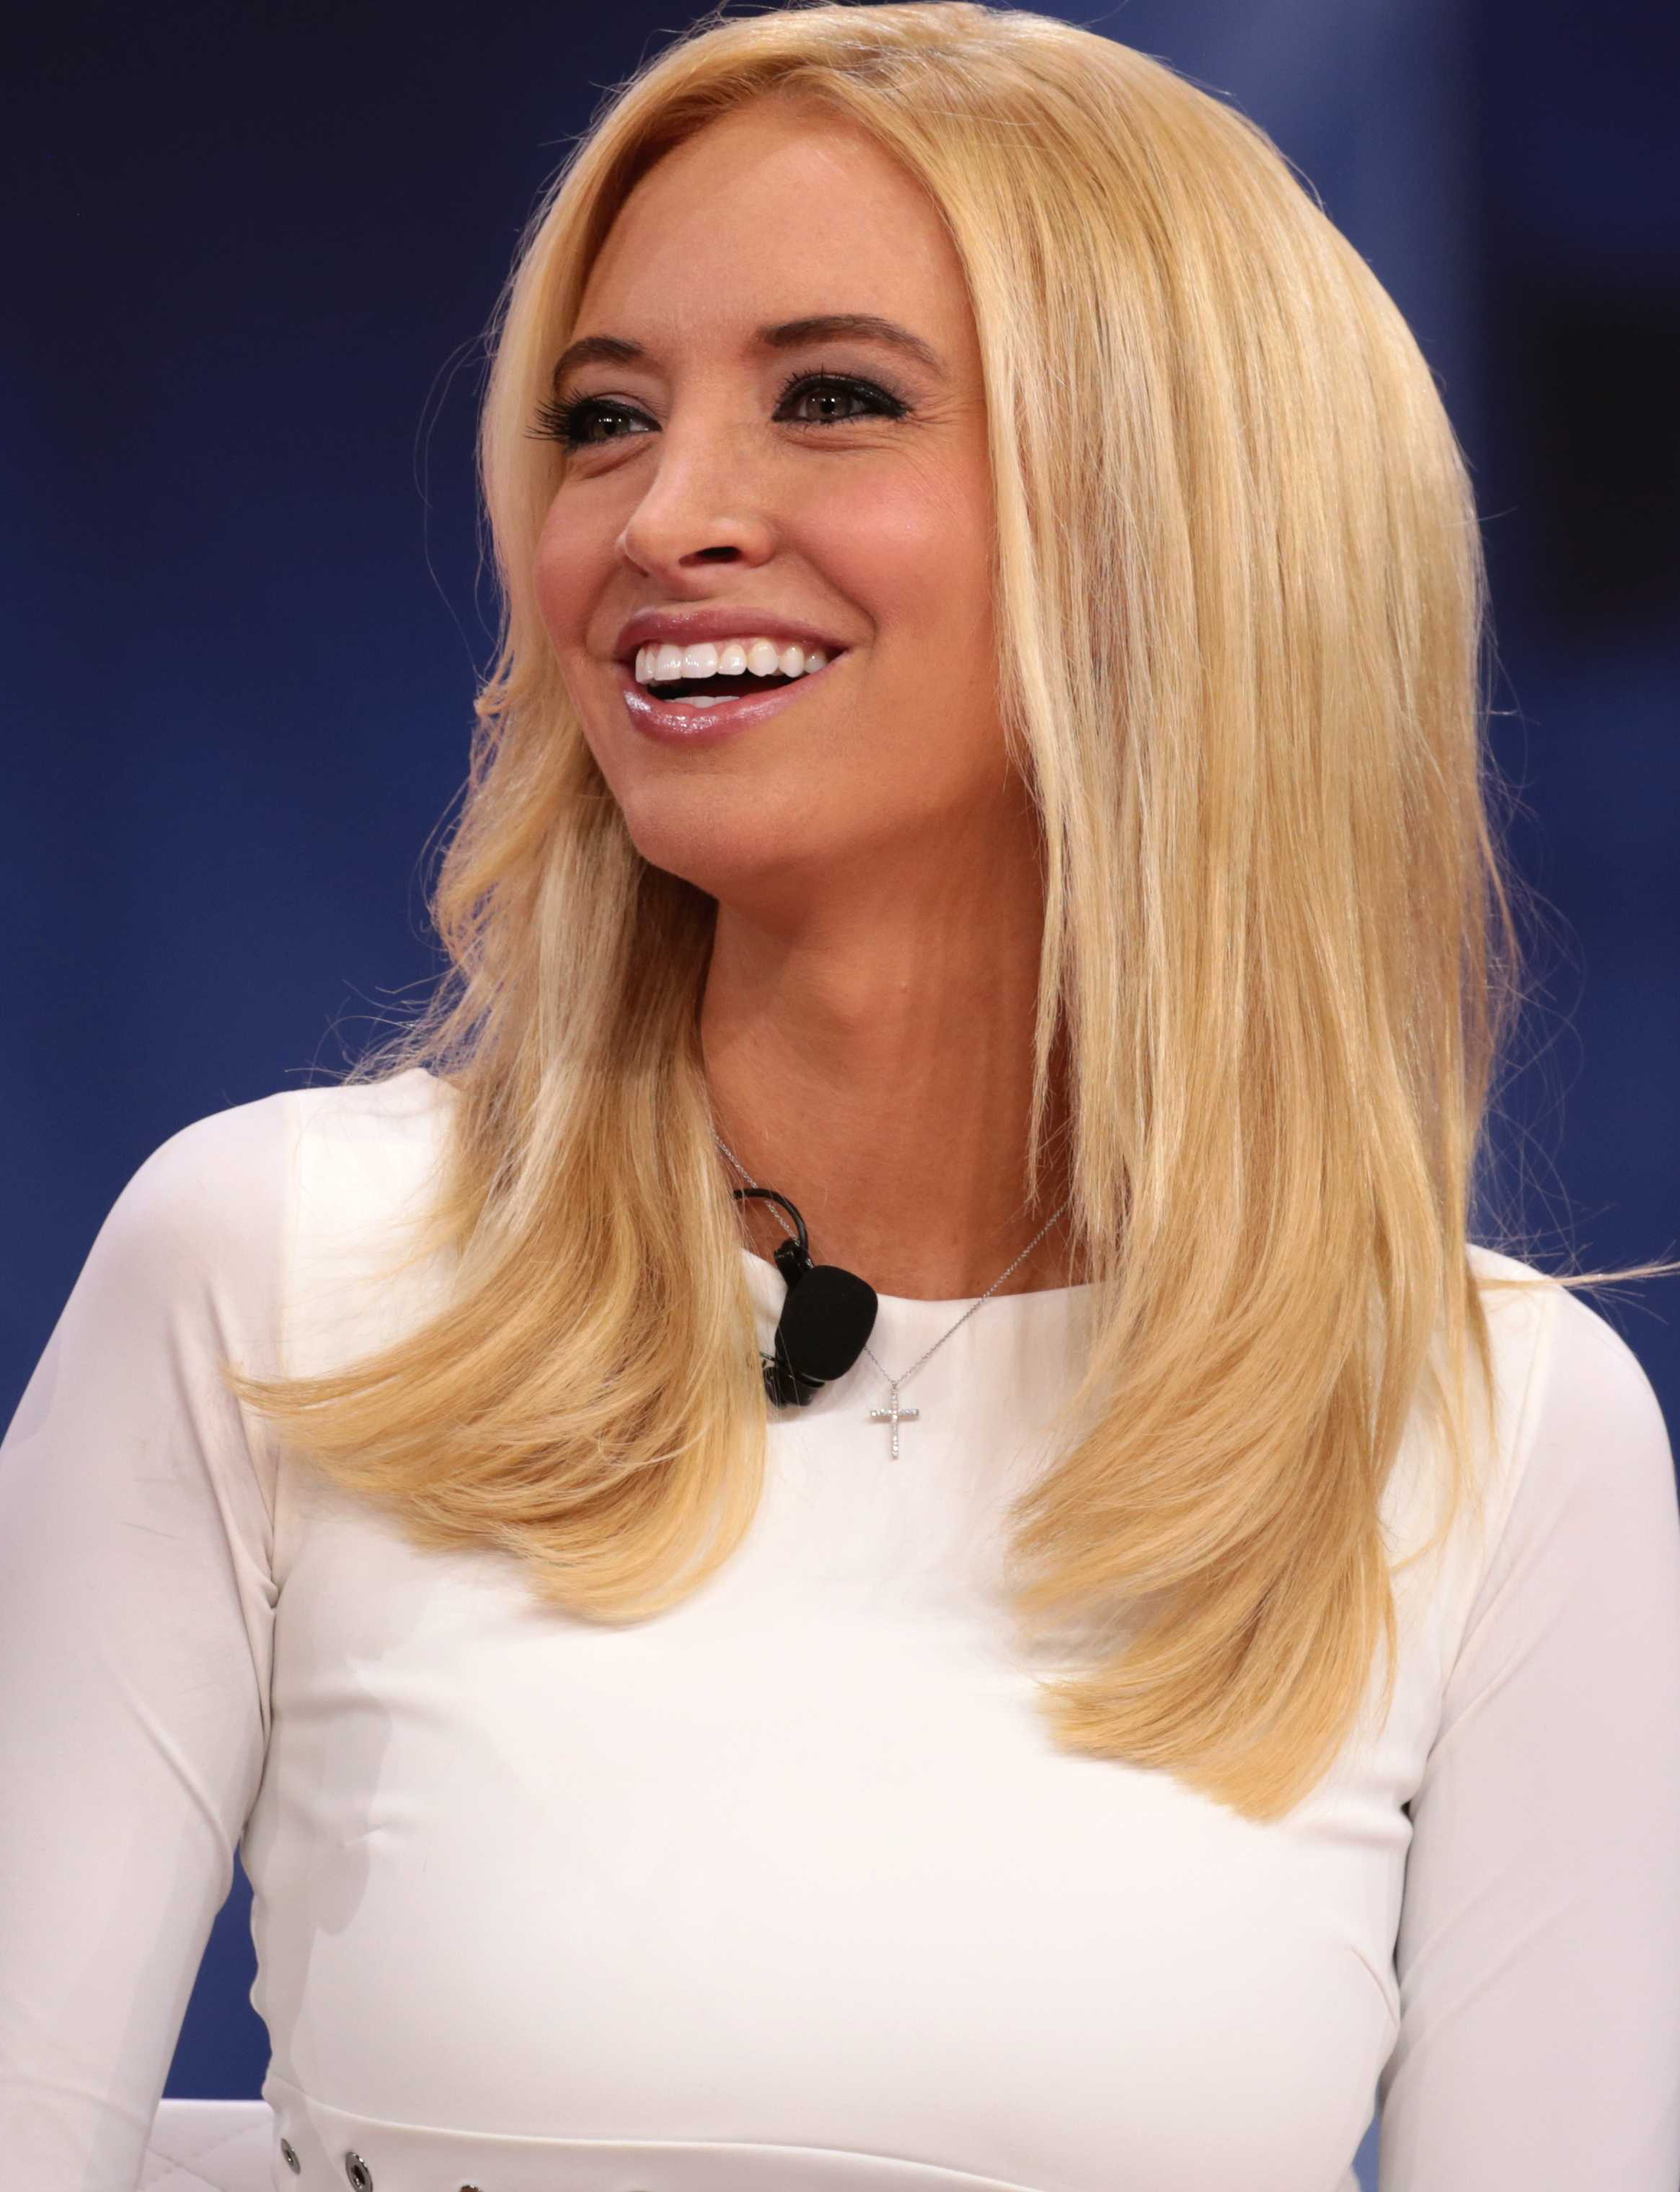 Kayleigh Mcenany Bio Net Worth Us Press Secretary Salary Education Married Husband Age Facts Wiki Family Nationality Height Parents Gossip Gist